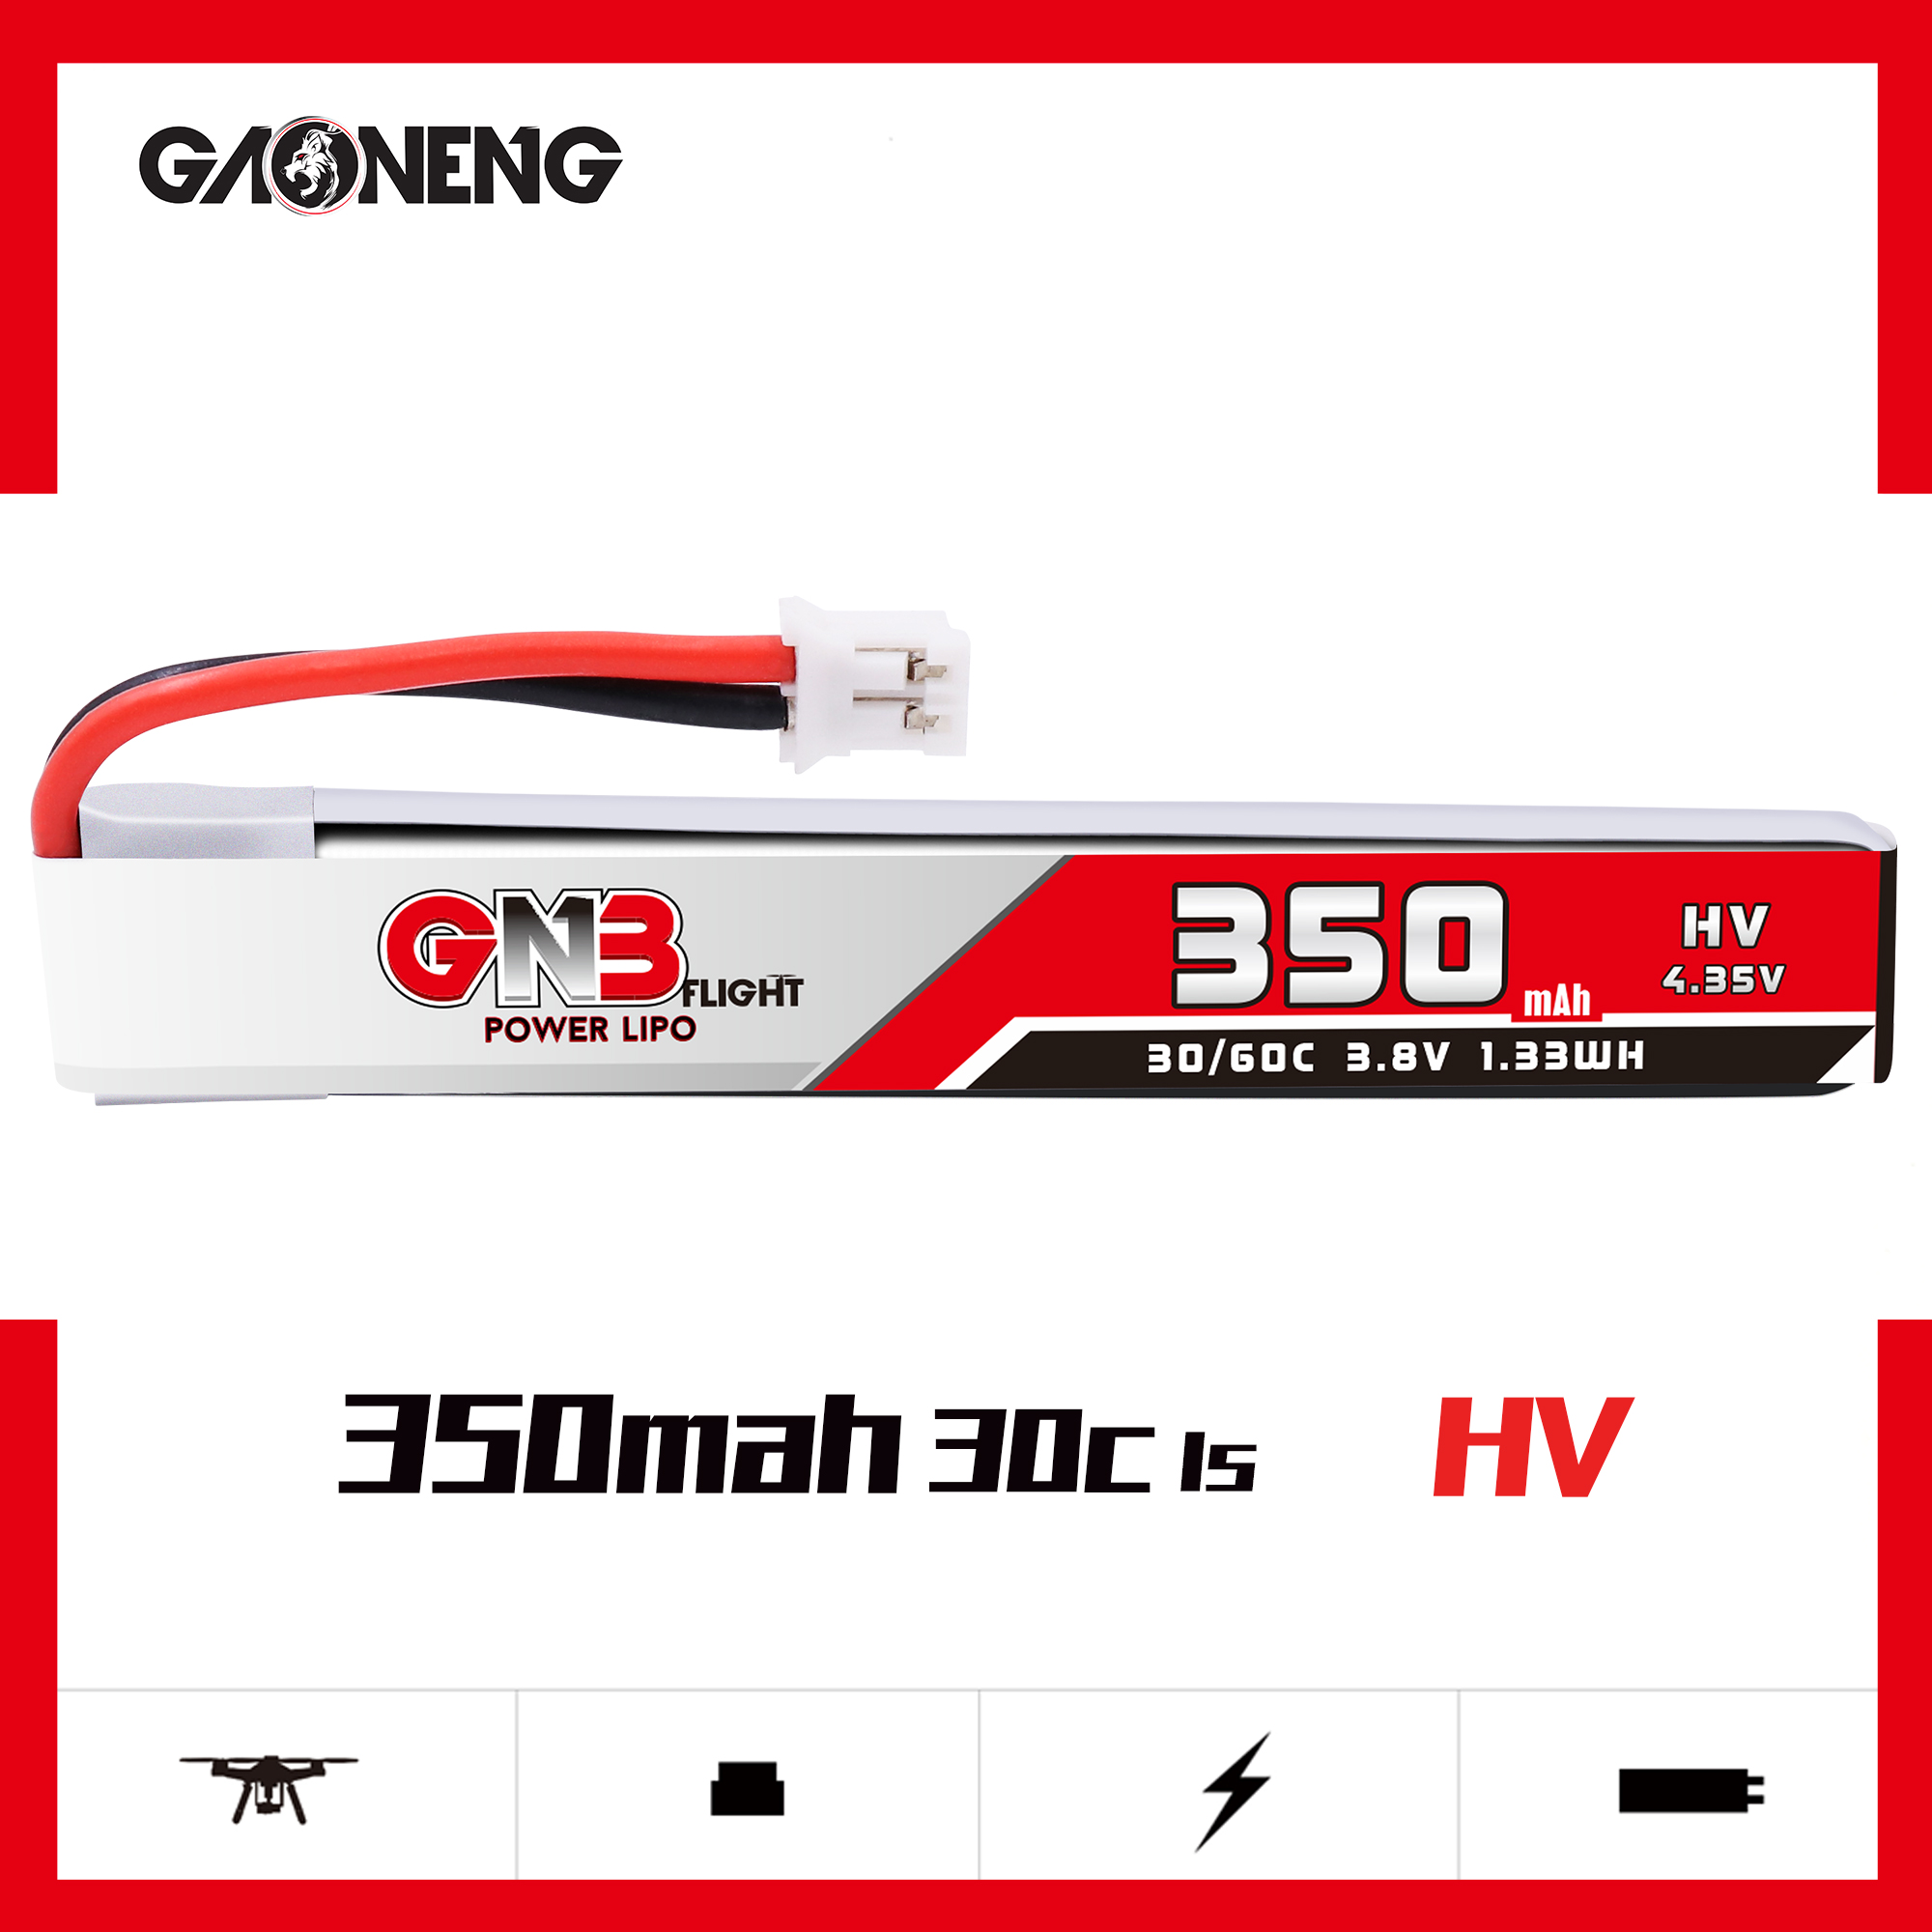 GNB 1S HV 350MAH 3.85V 30/60C LIPO BATTERY (W/CABLE)